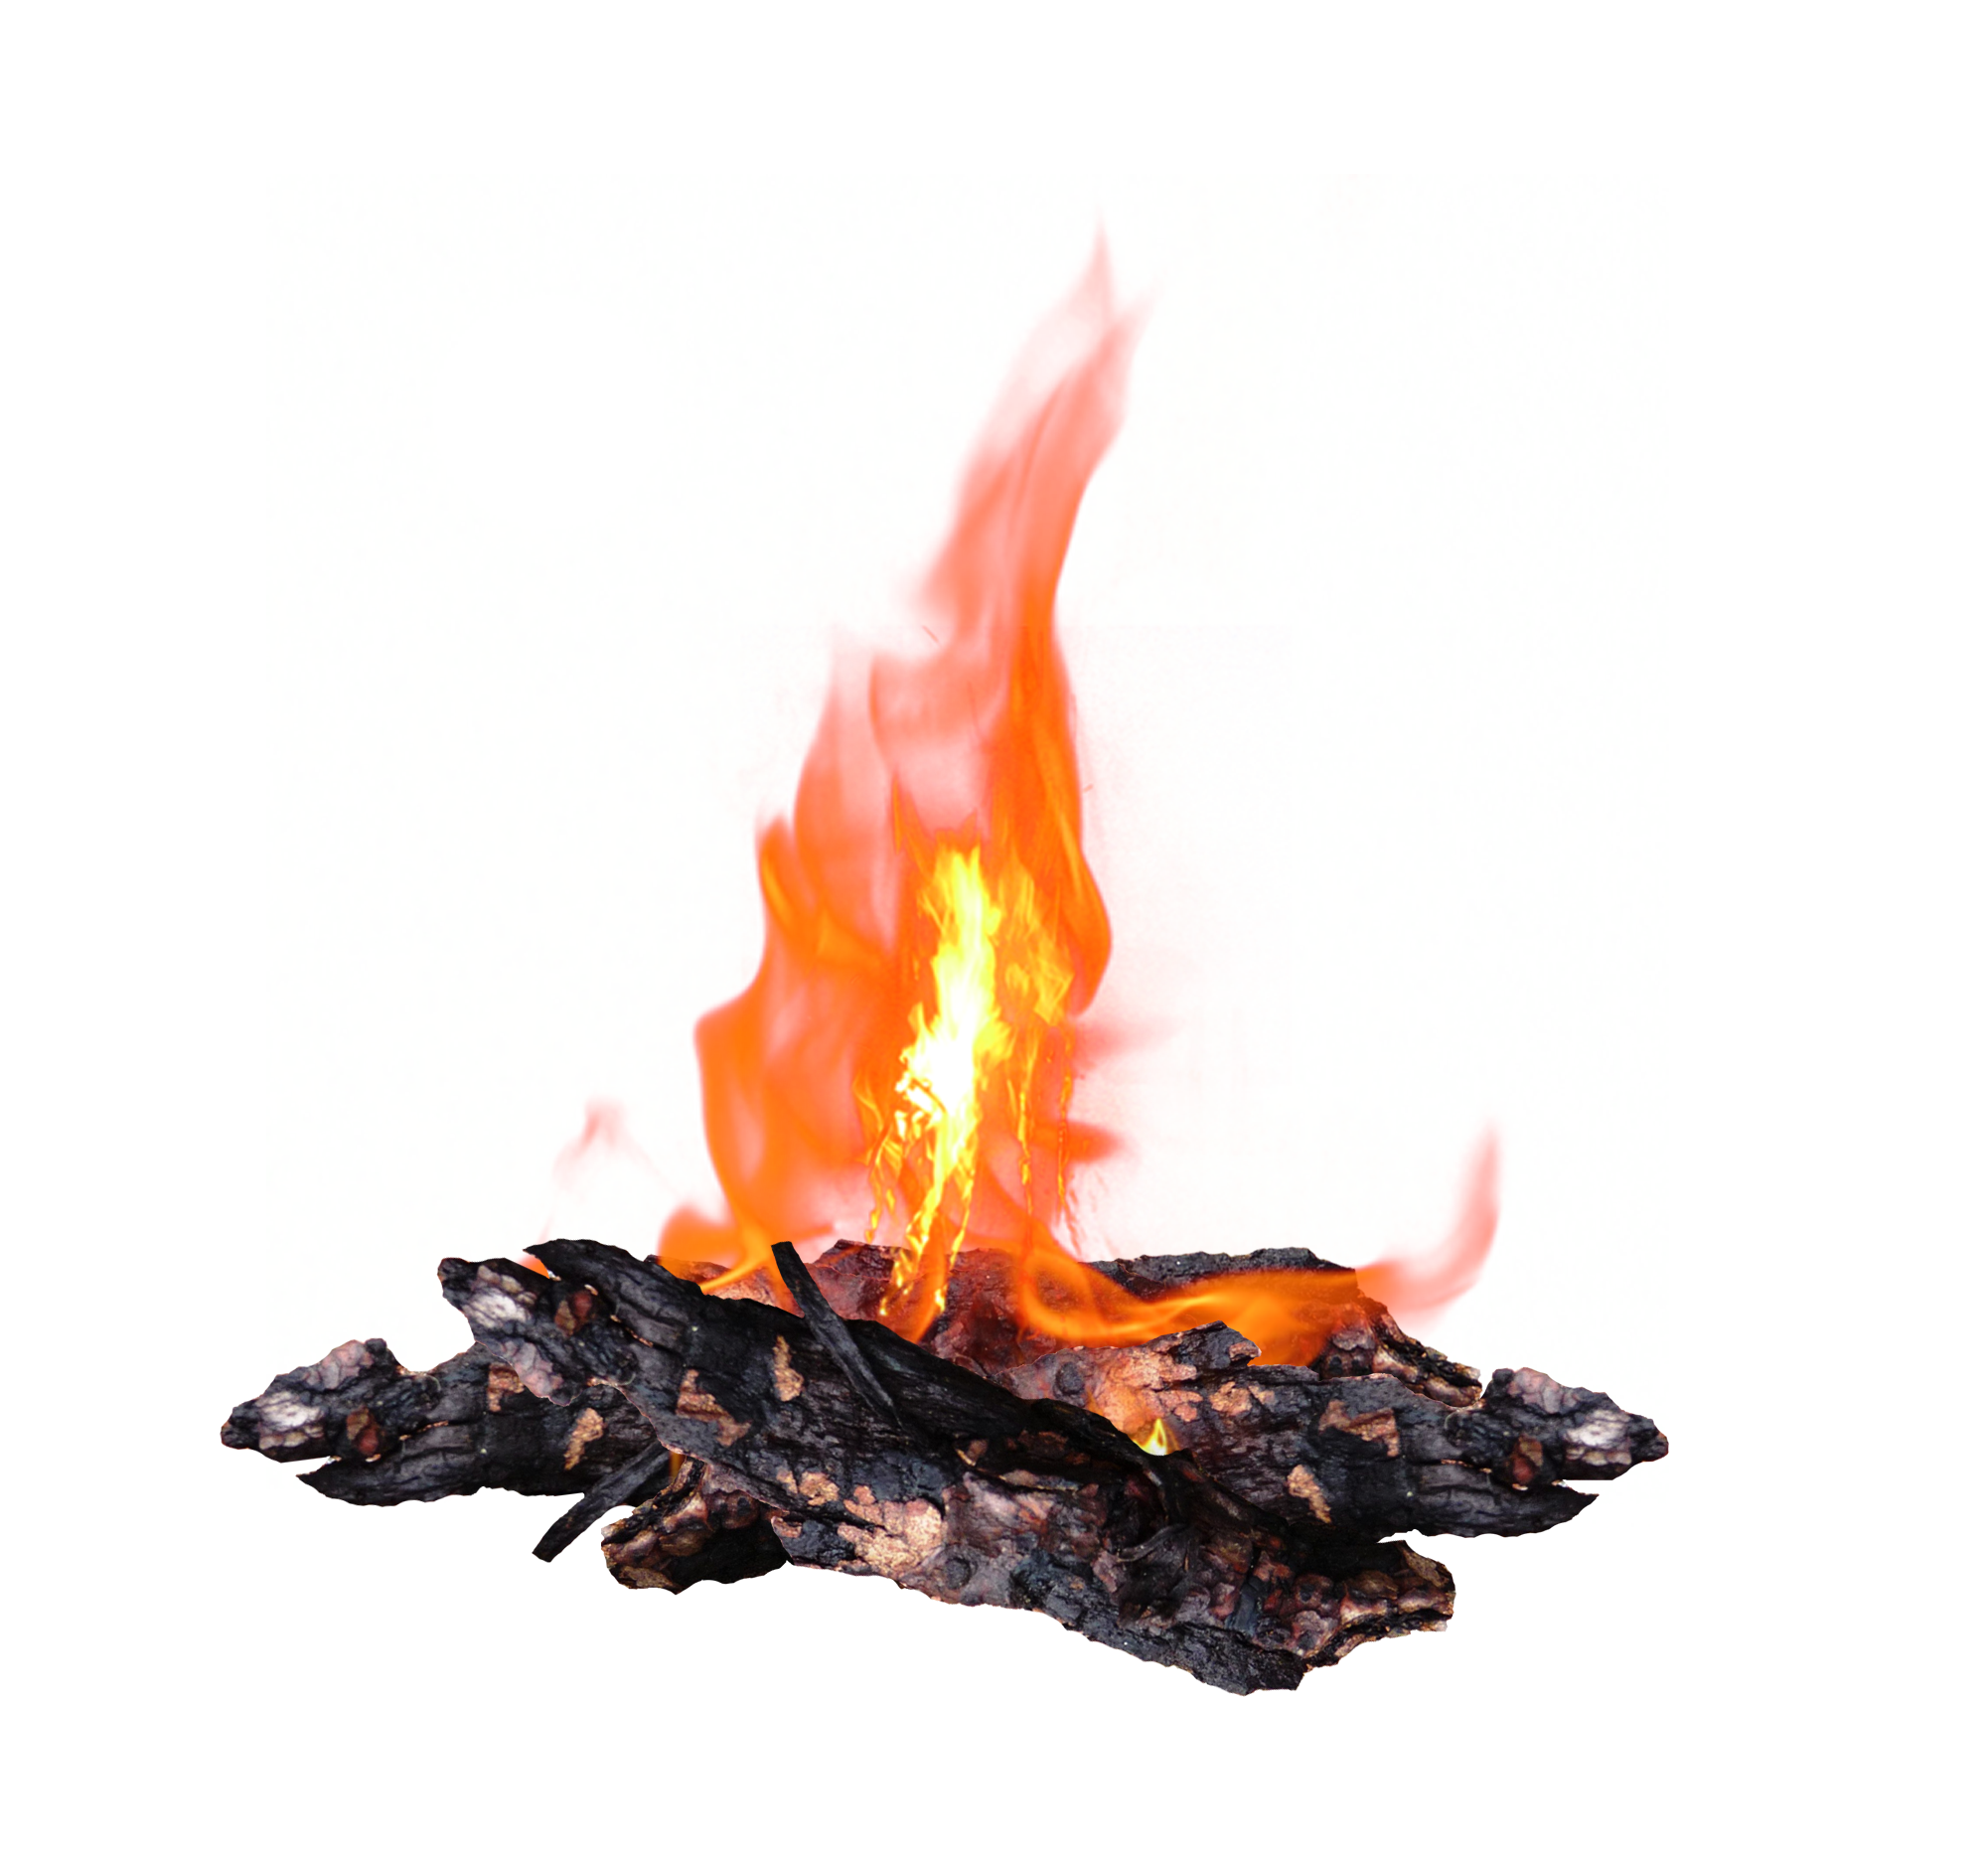 Heat clipart light source. Flame clip art fire